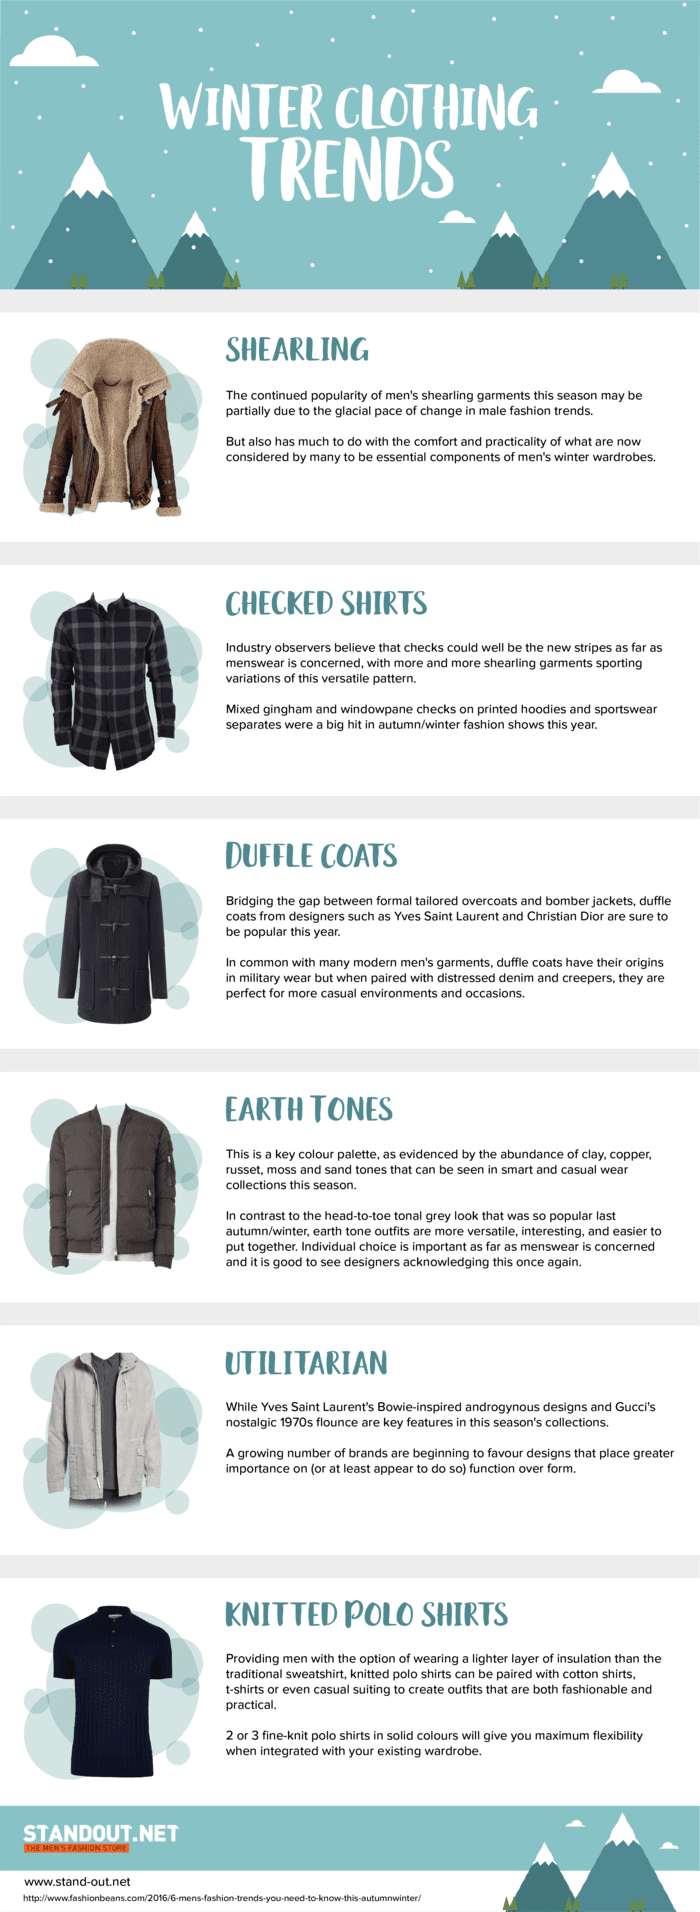 Winter Clothing Trends #infographic #Clothes #Winter #Trends #Winter Clothing #Fashion